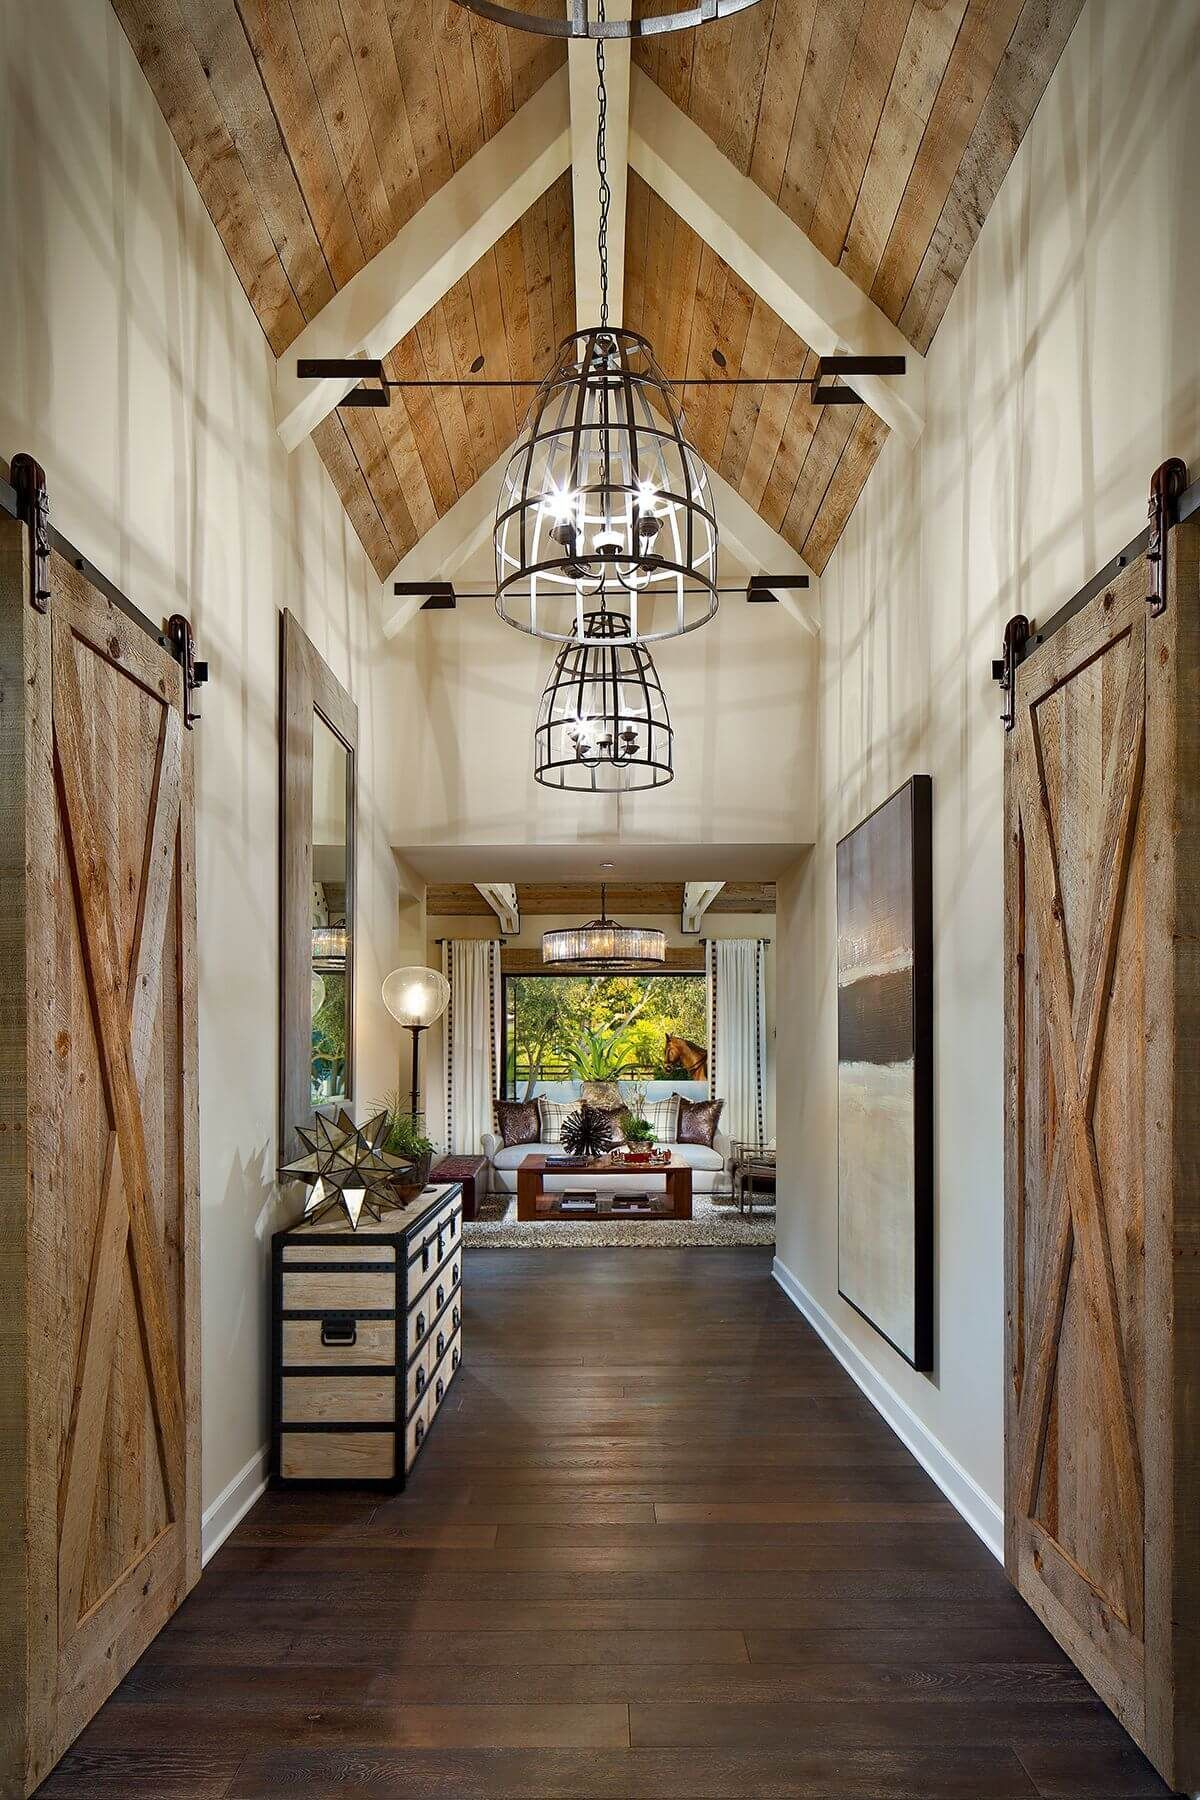 Https Homebnc Com Best Rustic Farmhouse Interior Design Ideas Farmhouseinterior: Https://homebnc.com/best-rustic-farmhouse-interior-design-ideas/ #farmhouseinterior #Interi